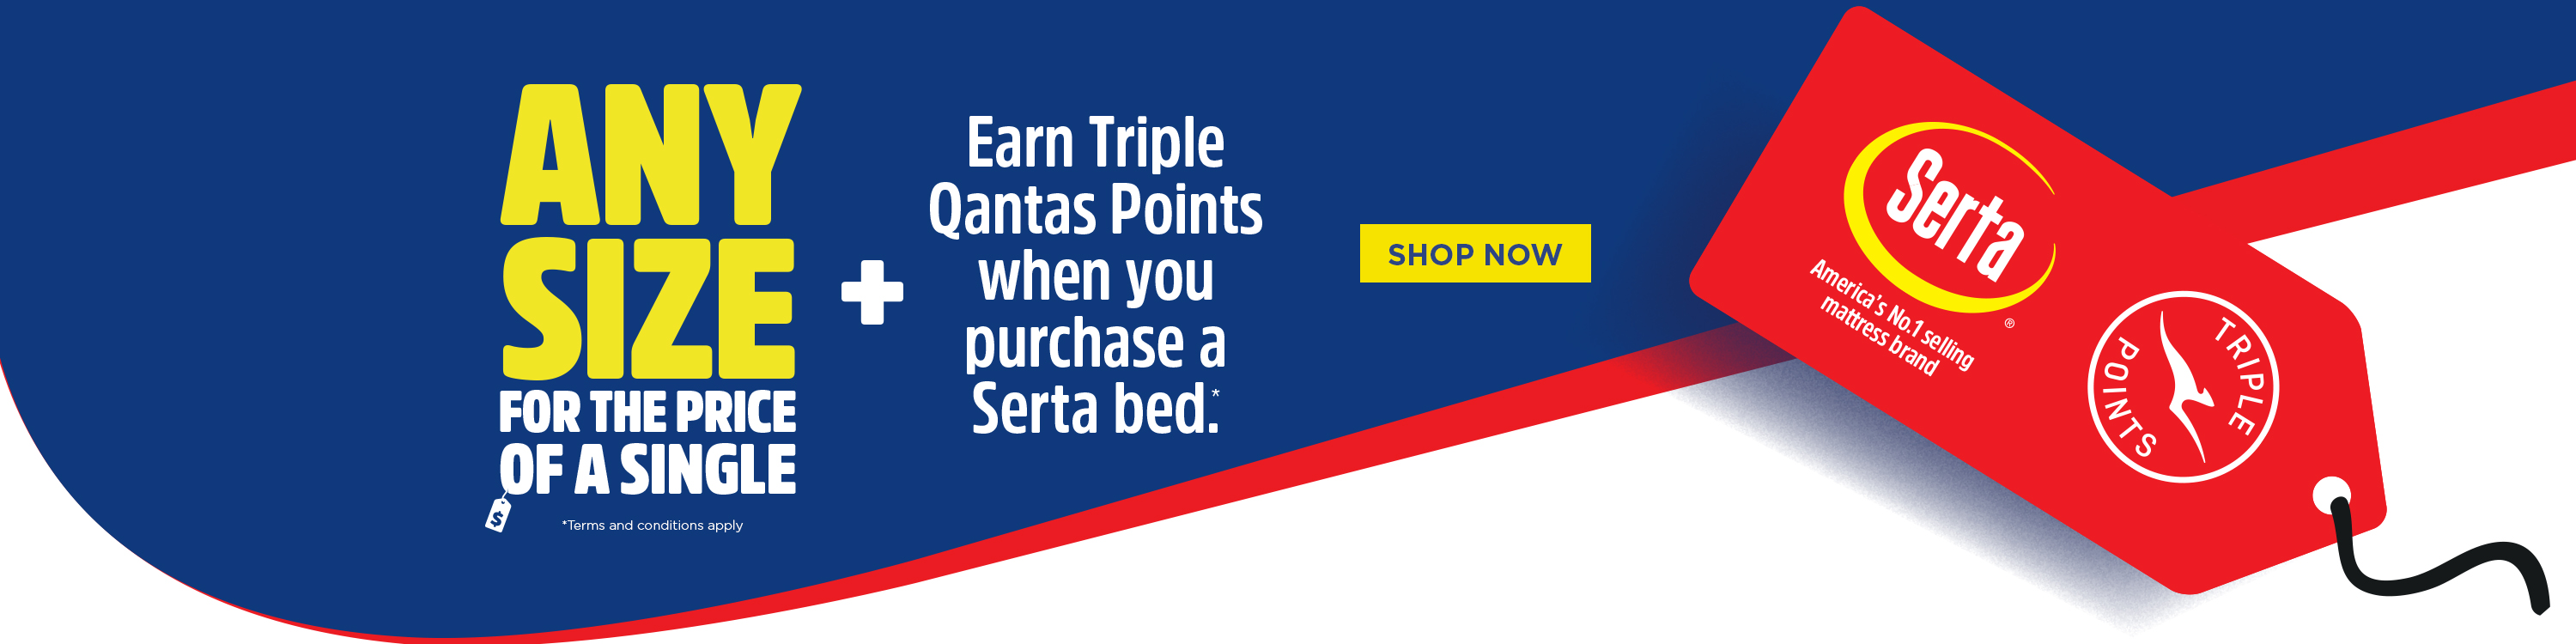 Earn TRIPLE Qantas Points with Forty Winks